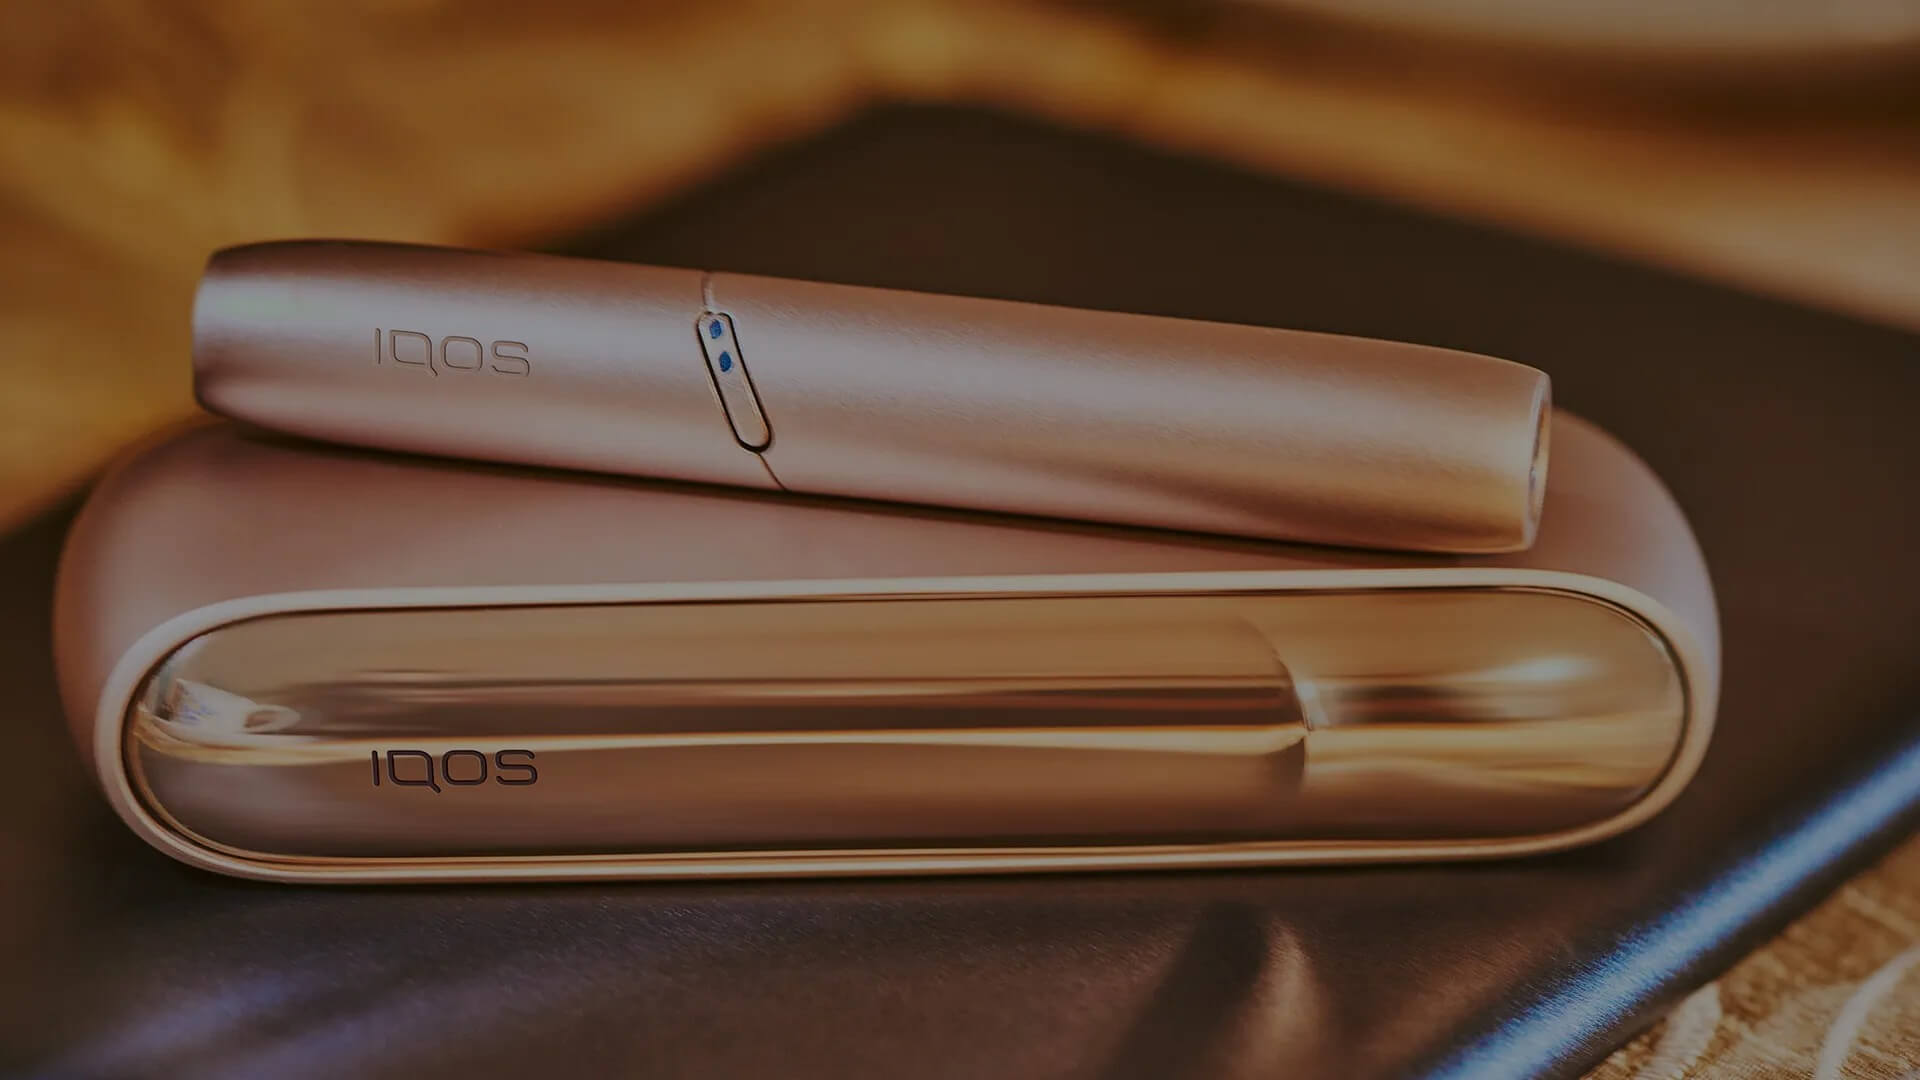 Gold IQOS Duo on a wooden table